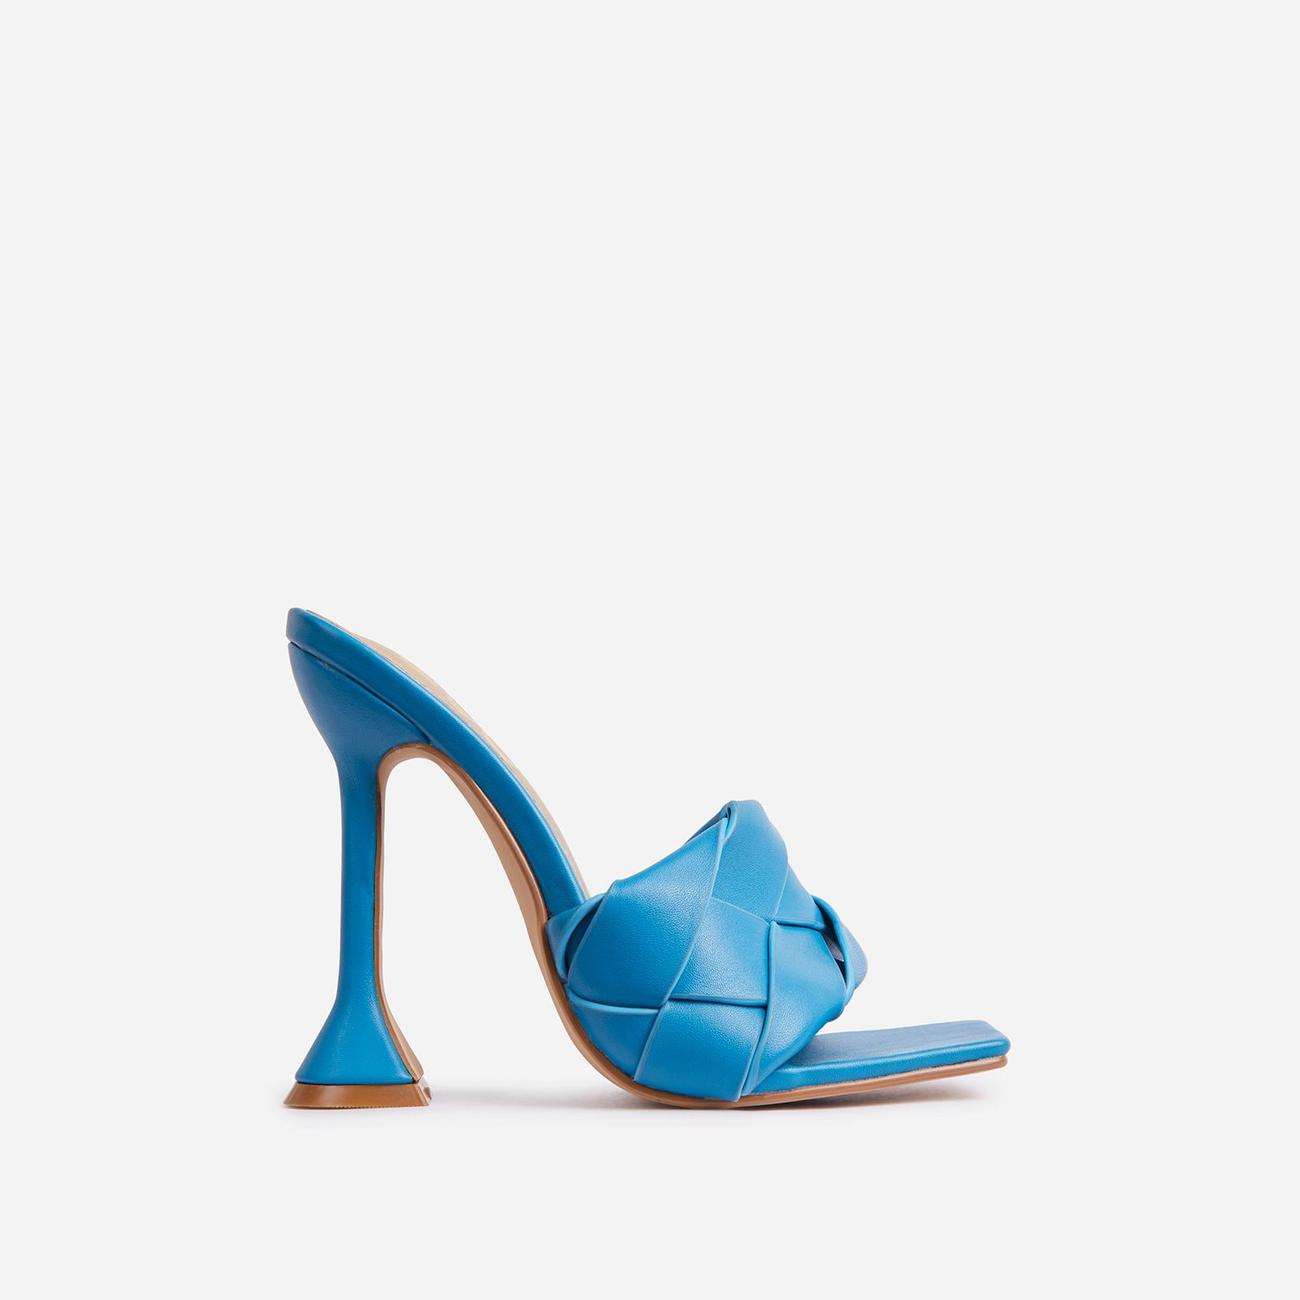 Handled Woven Square Peep Toe Pyramid Heel Mule In Blue Faux Leather Image 1